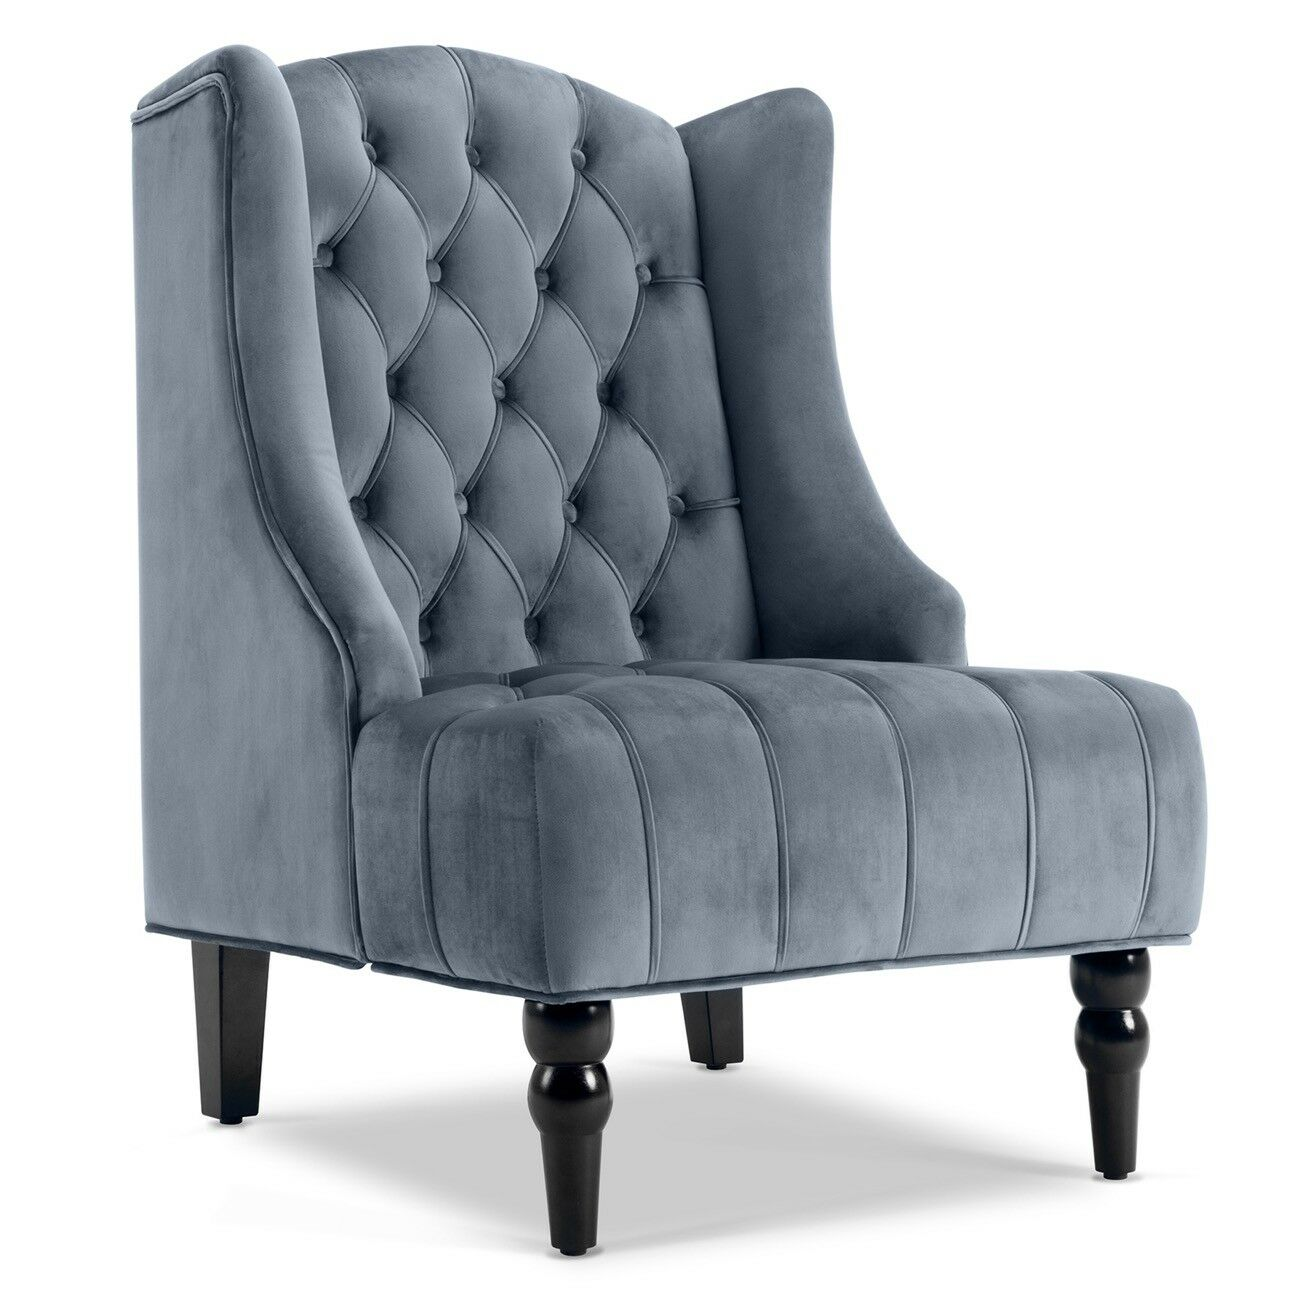 Modern Tall Wingback Tufted Accent Armchair Fabric Vintage Chair Nailhead Navy For Sale Online Ebay